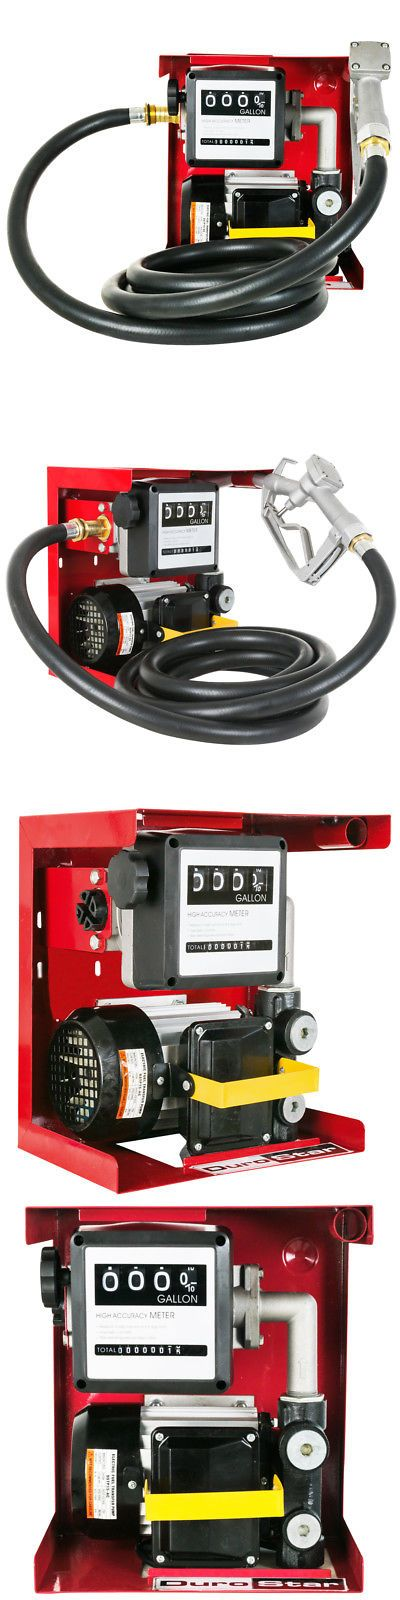 Chippers Shredders and Mulchers 42228: Durostar Dstp15-Ac Electric 16-Gpm Fuel Diesel Oil Transfer Pump W Flow Meter -> BUY IT NOW ONLY: $149.99 on eBay!